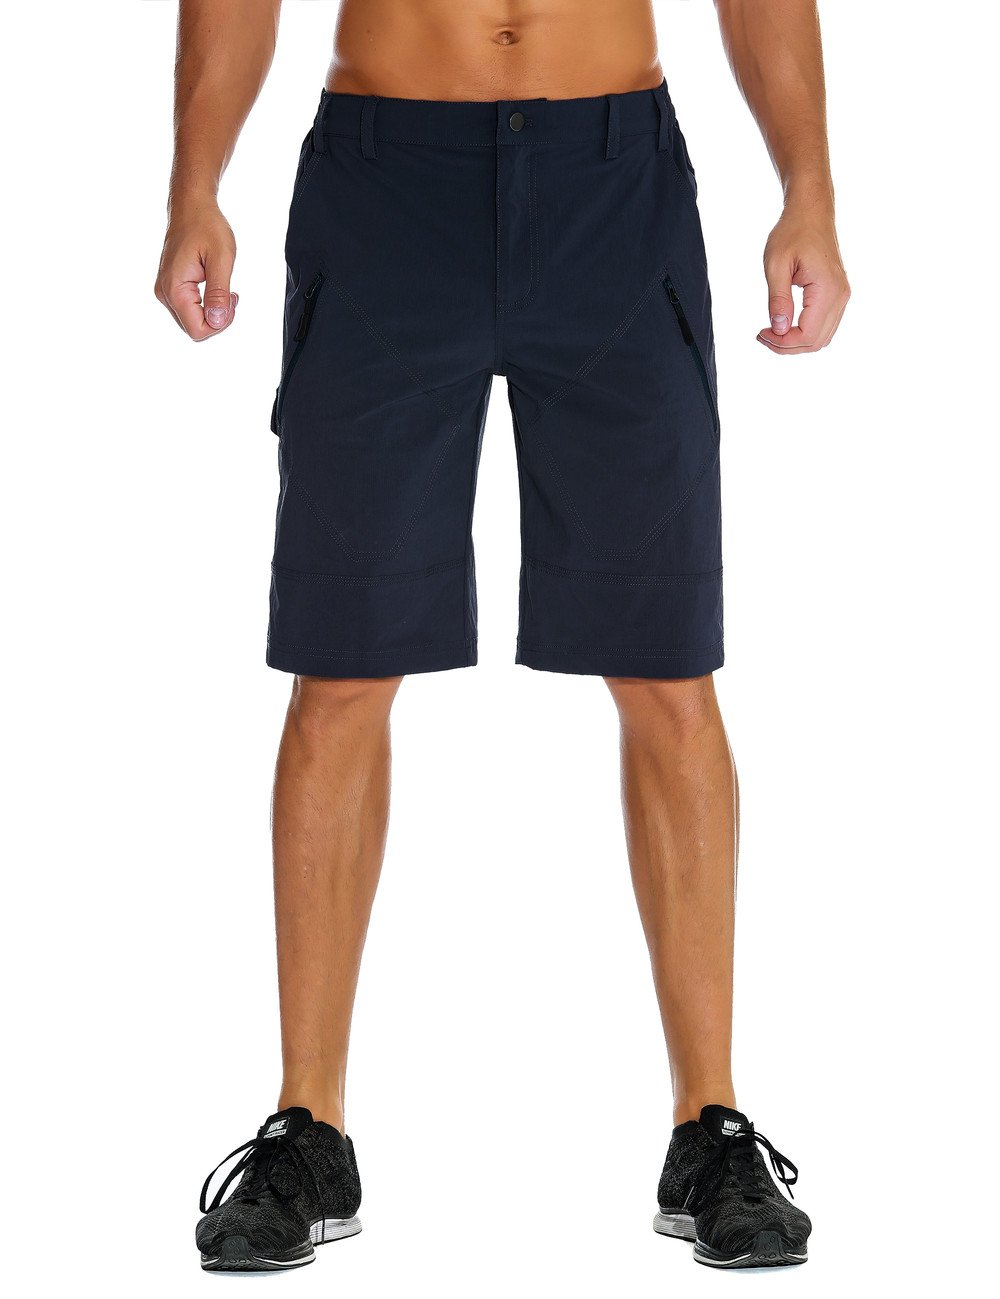 Nonwe Men's Quick Dry Outdoor Travel Cargo Shorts Blue 34